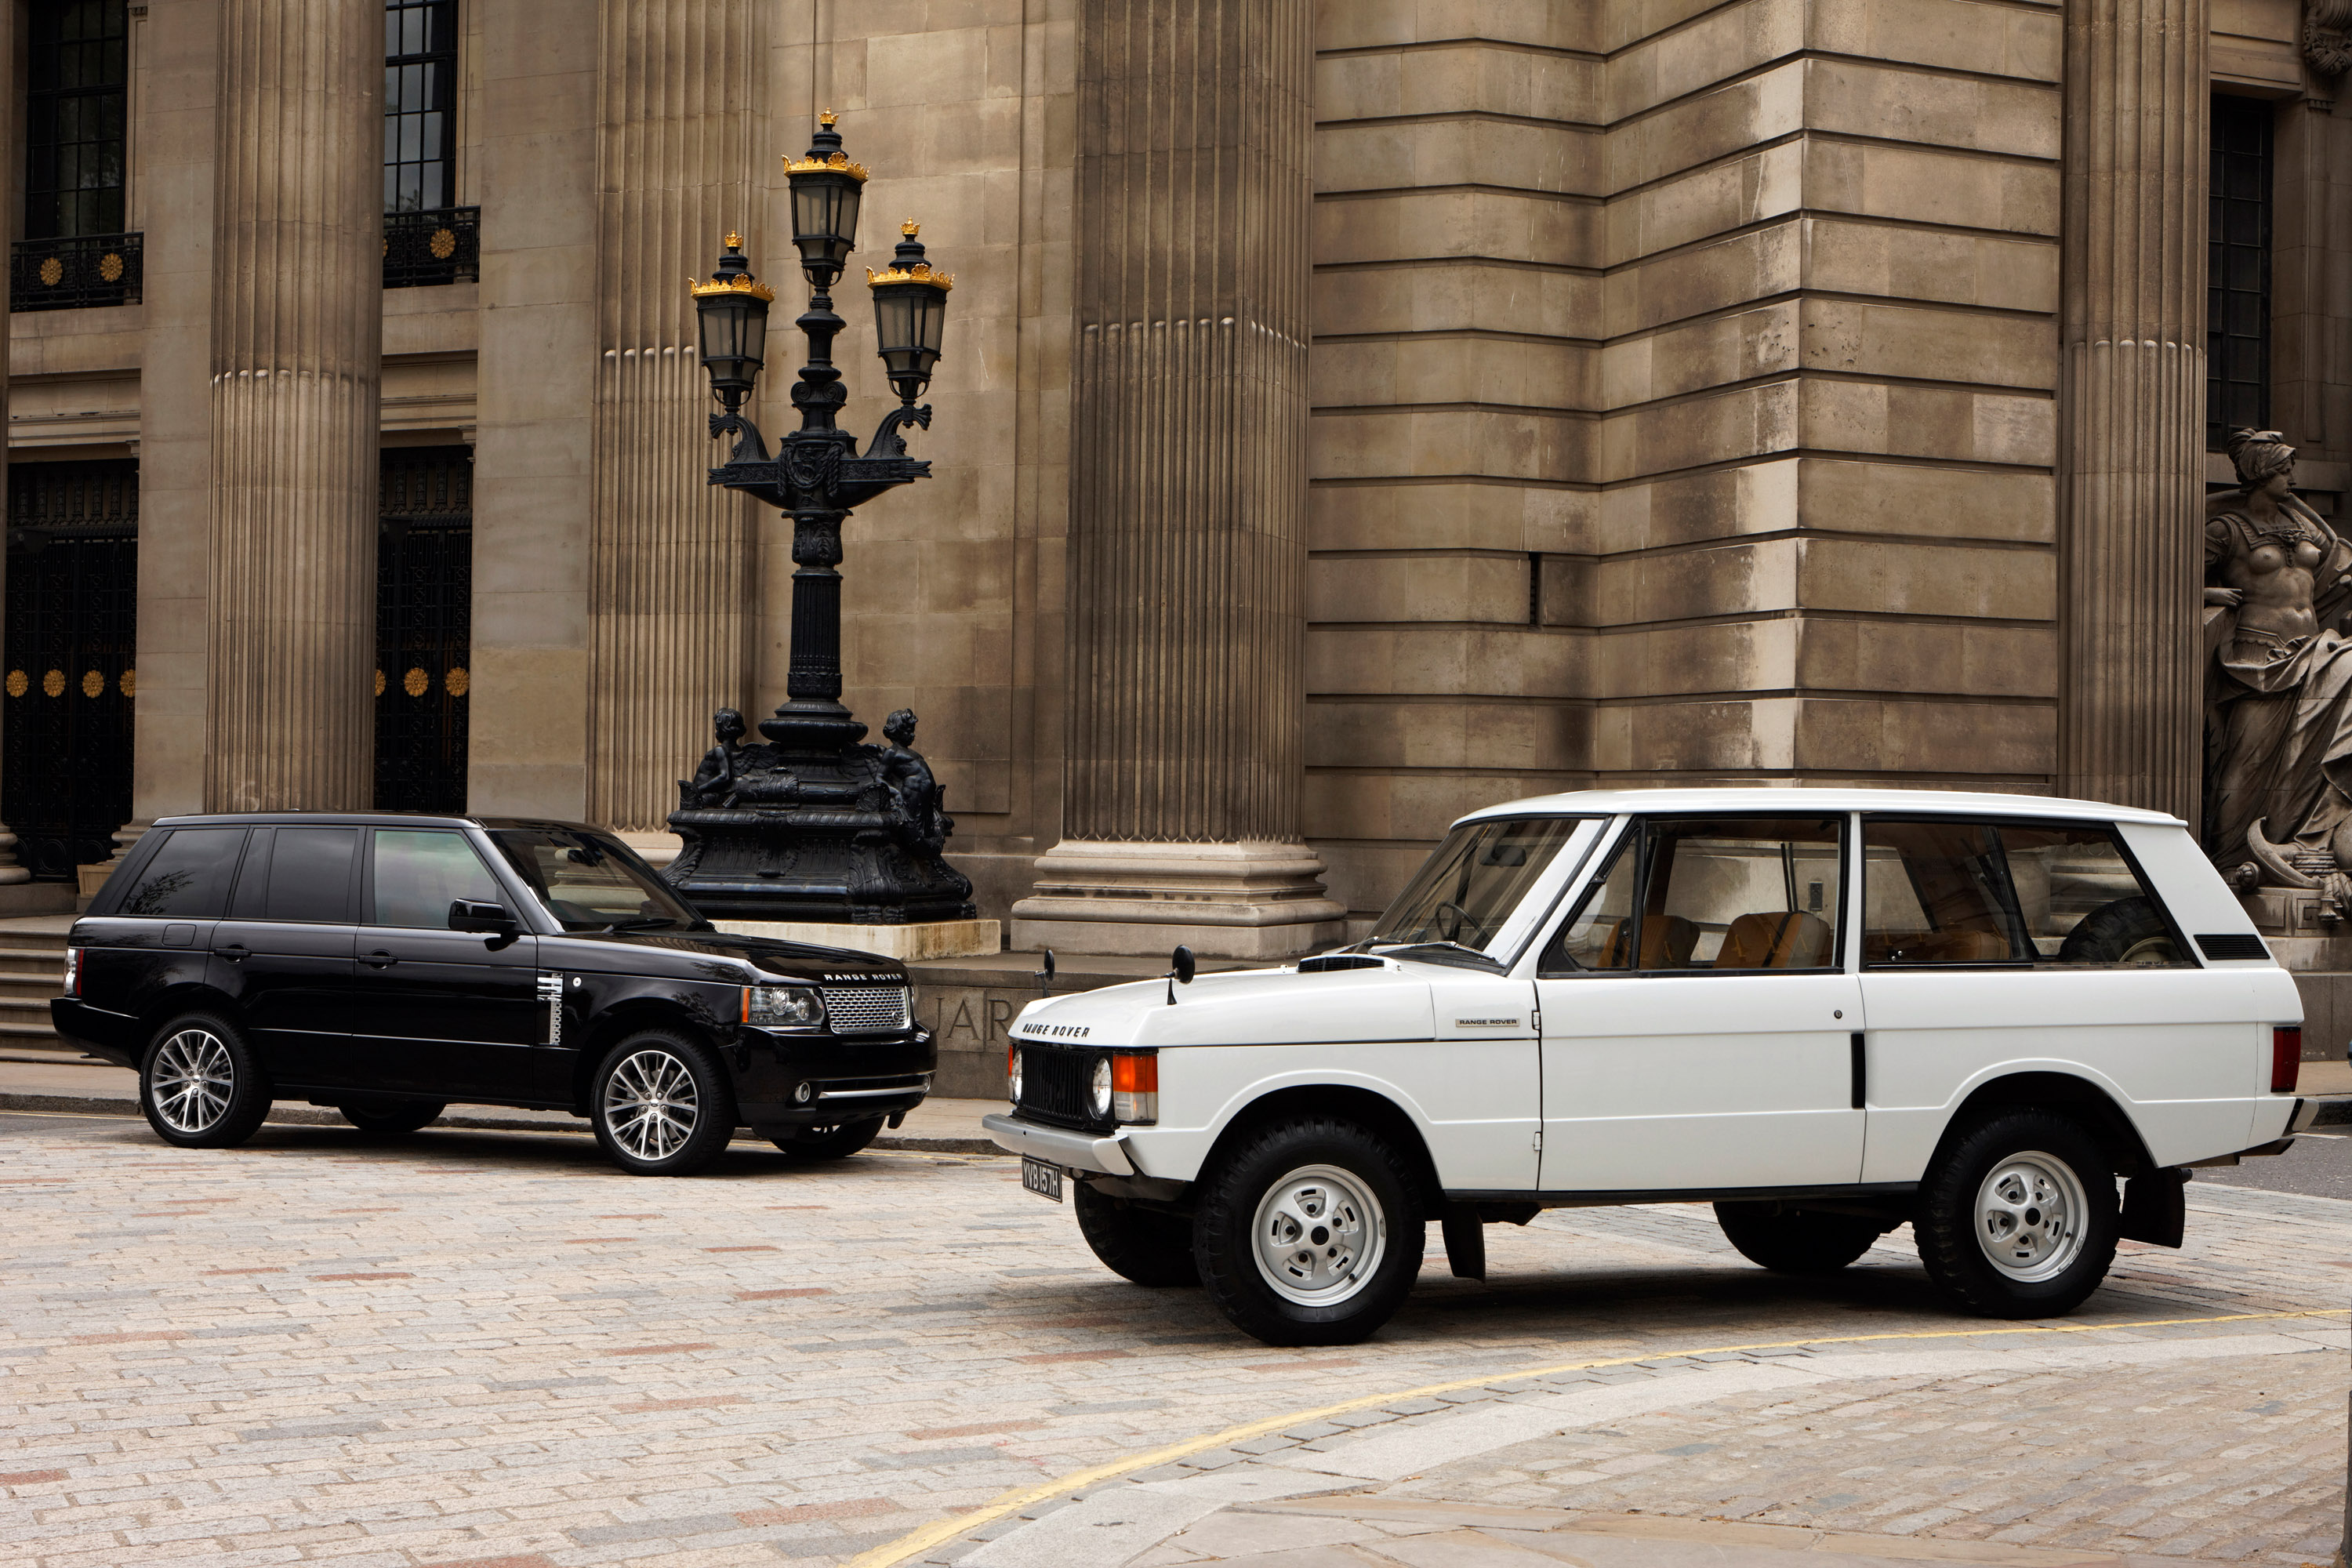 2011 Range Rover Autobiography Black 40th Anniversary Limited Edition ...